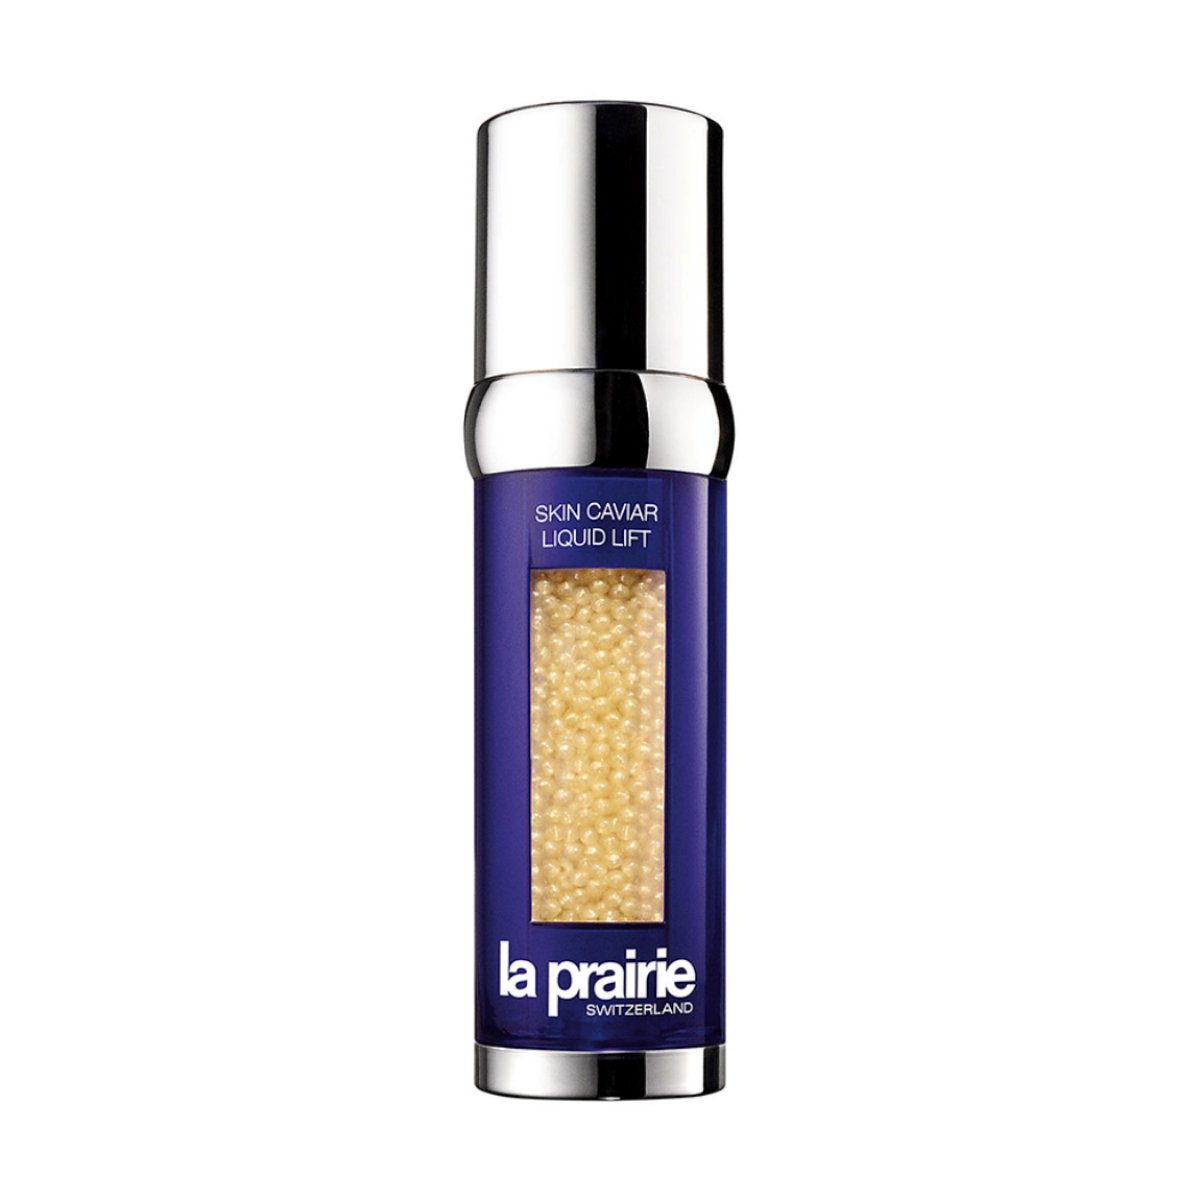 la prairie skin caviar liquid lift 30ml. Black Bedroom Furniture Sets. Home Design Ideas